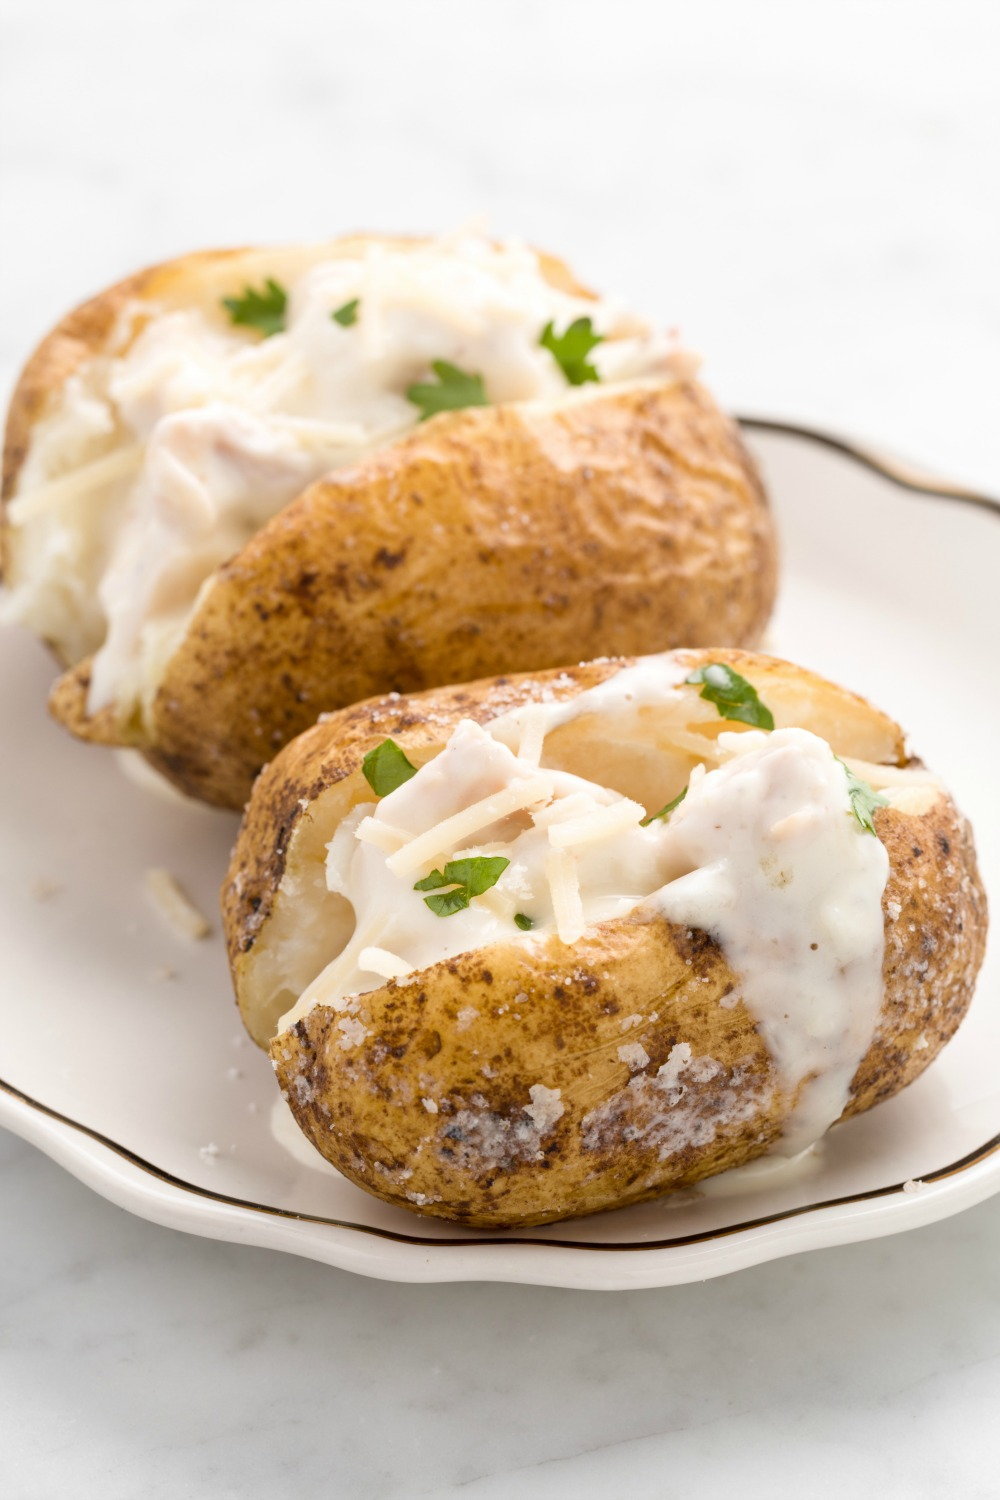 Best Baked Potato Toppings Ways To Top Baked Potatoes